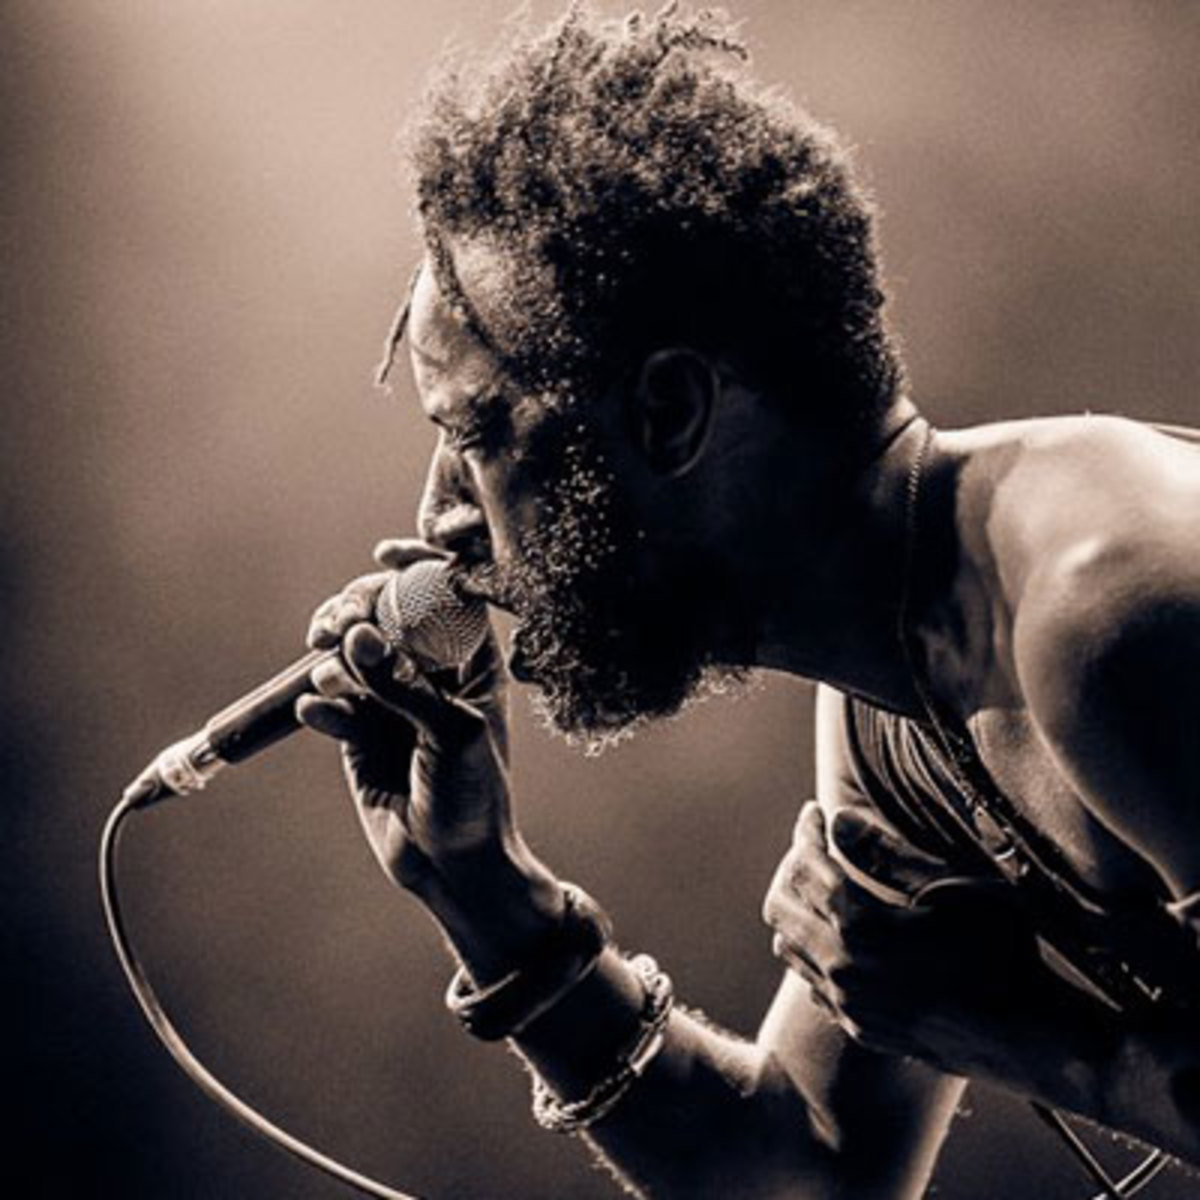 saulwilliams.jpg